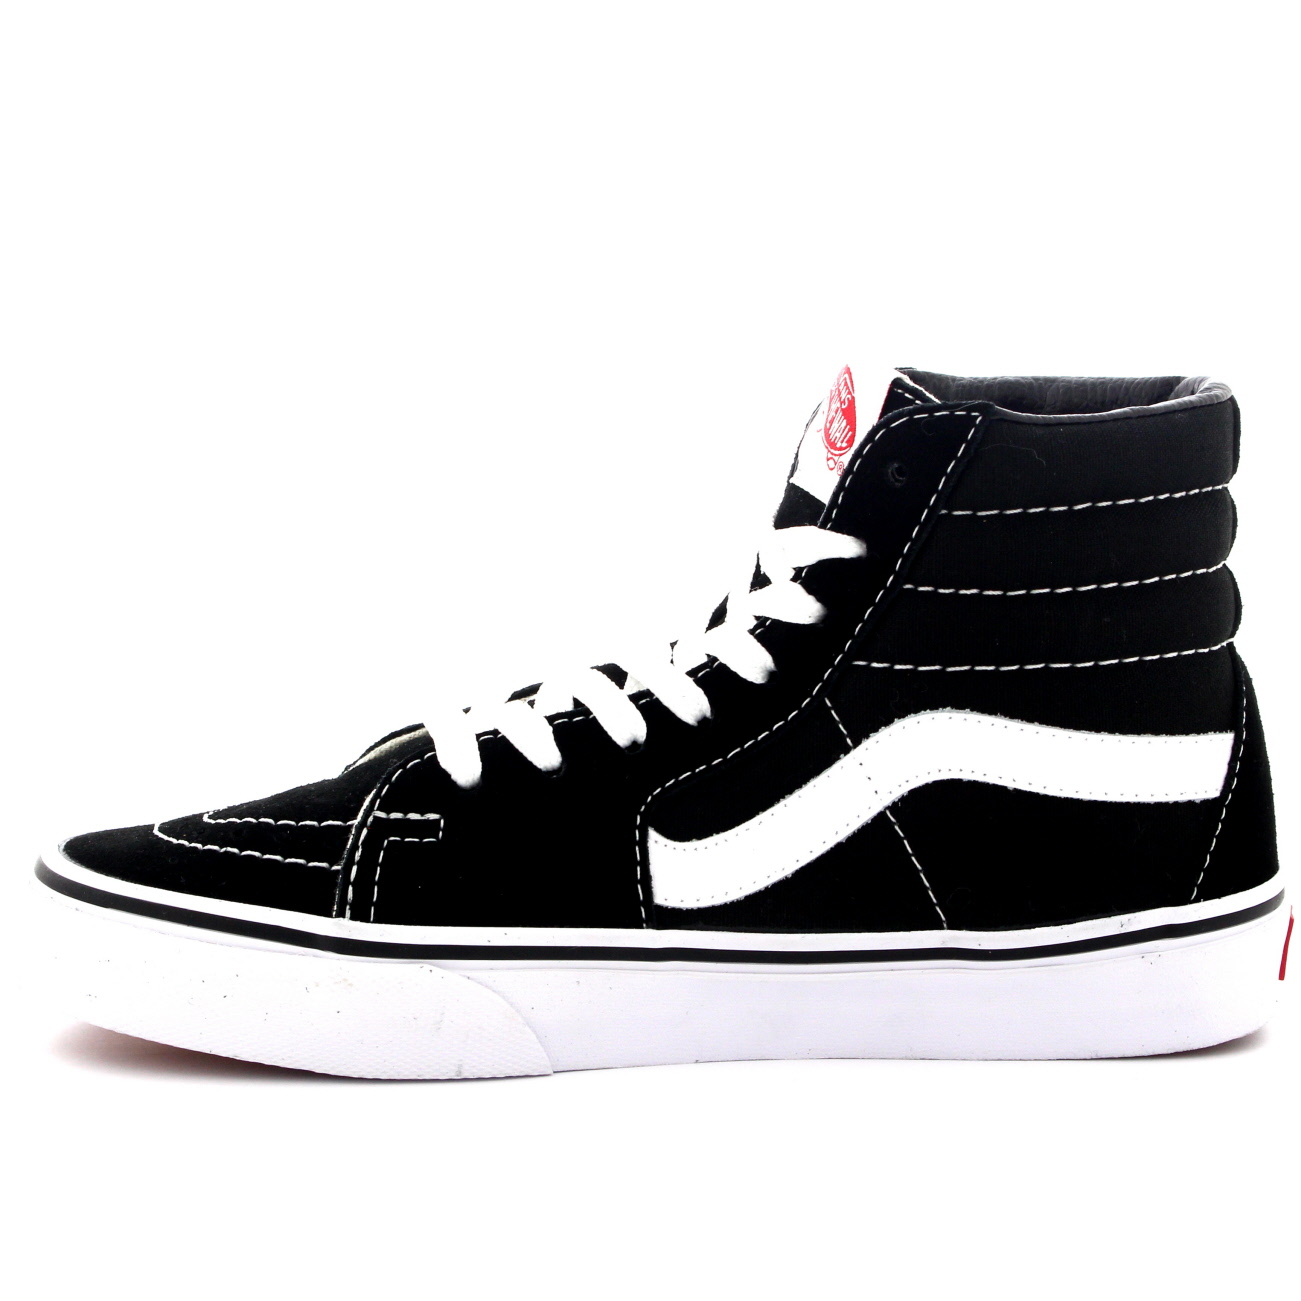 SK8-Hi Classic Unisex-Adults Hi Top Lace-up Sneaker Vans VIkf8I